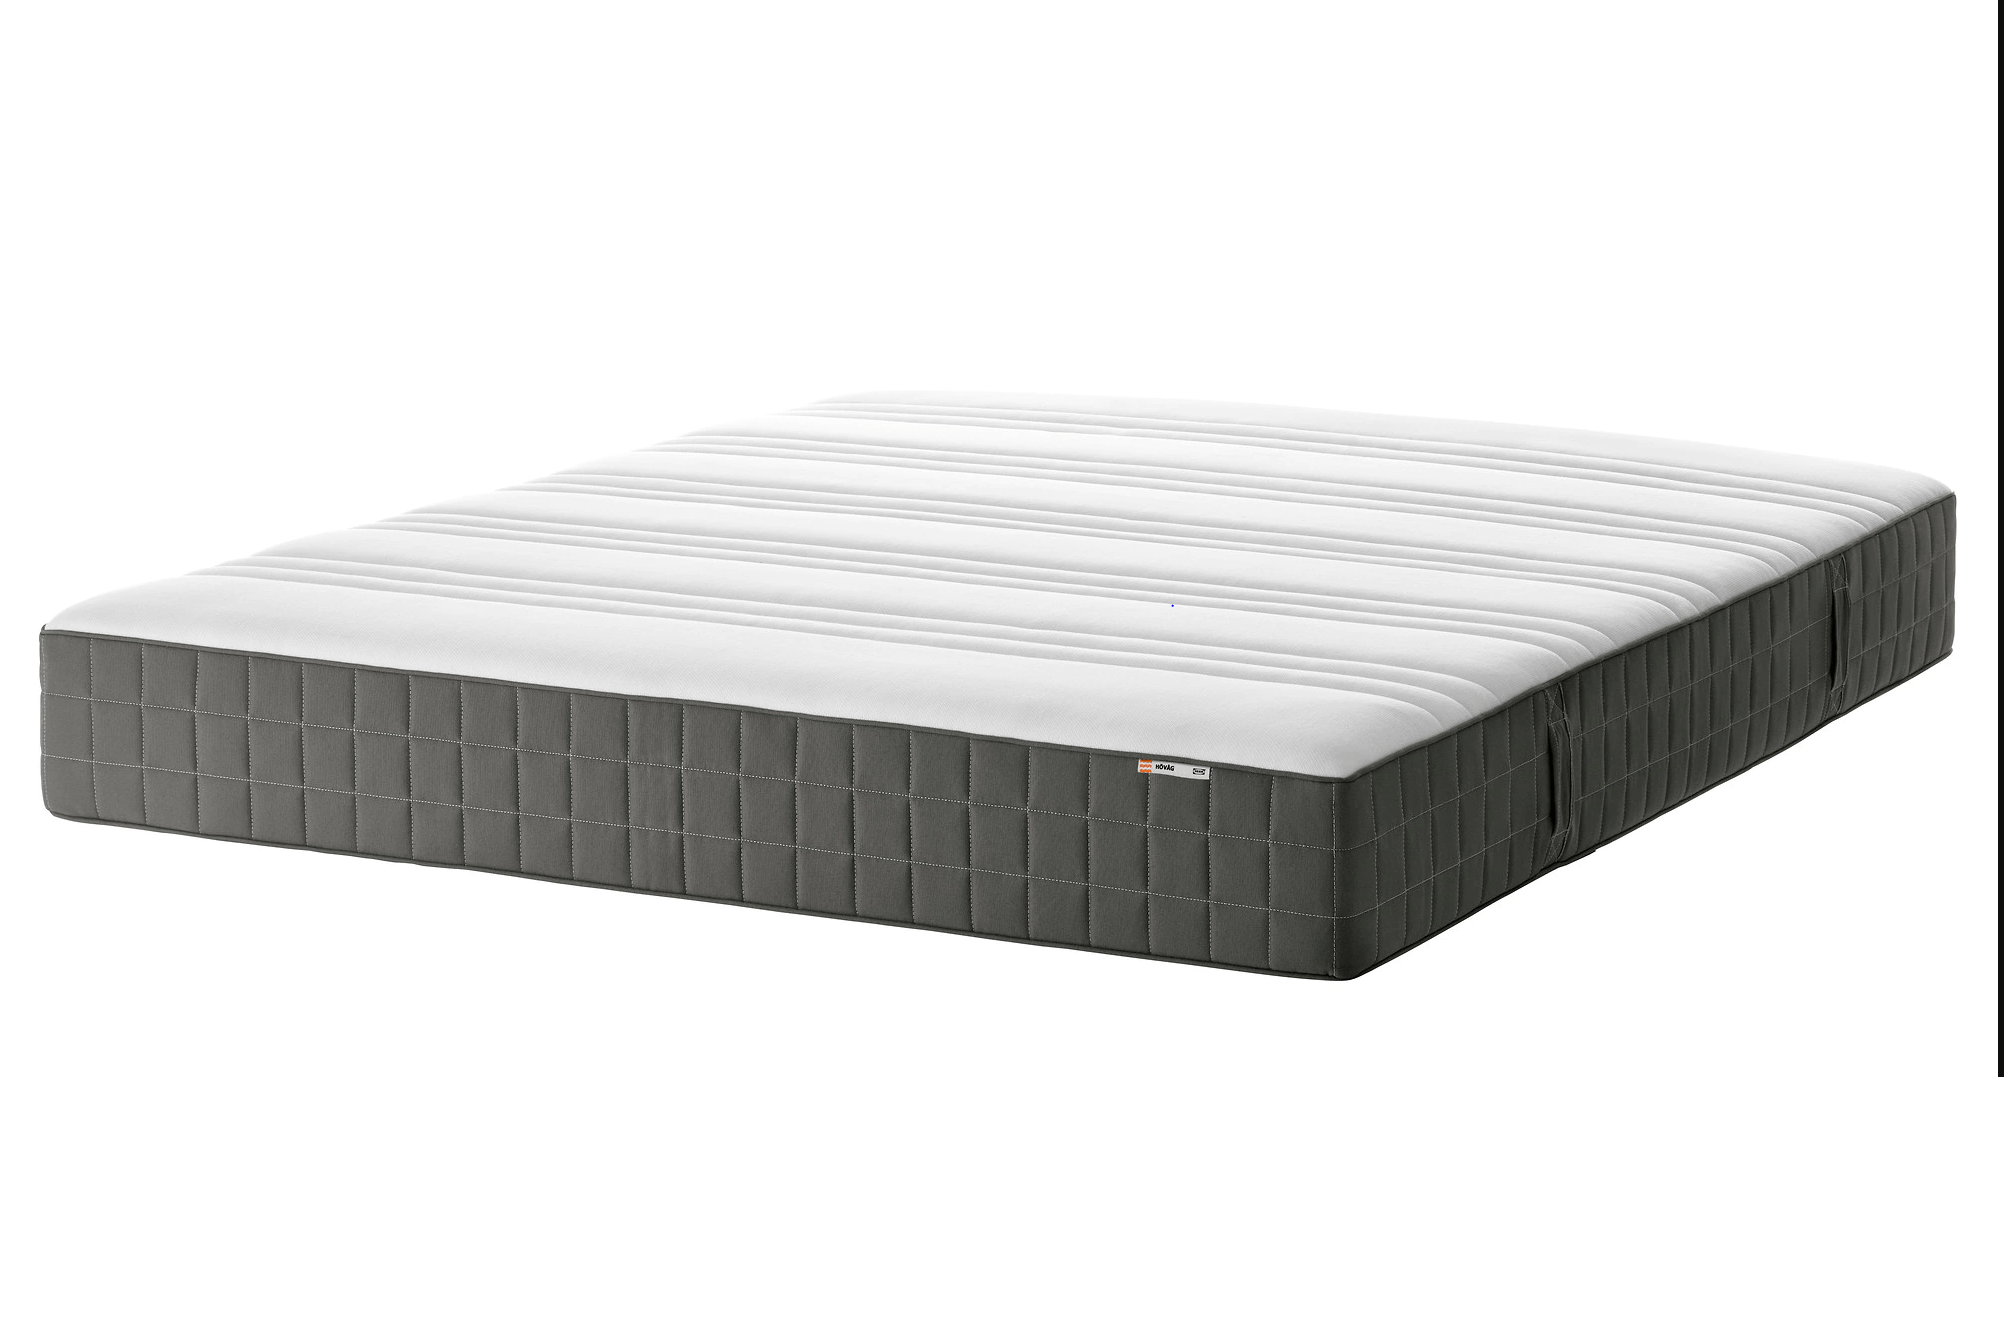 Single Mattress Length Best Mattress 2019 Top Memory Foam Pocket Sprung And Hybrid